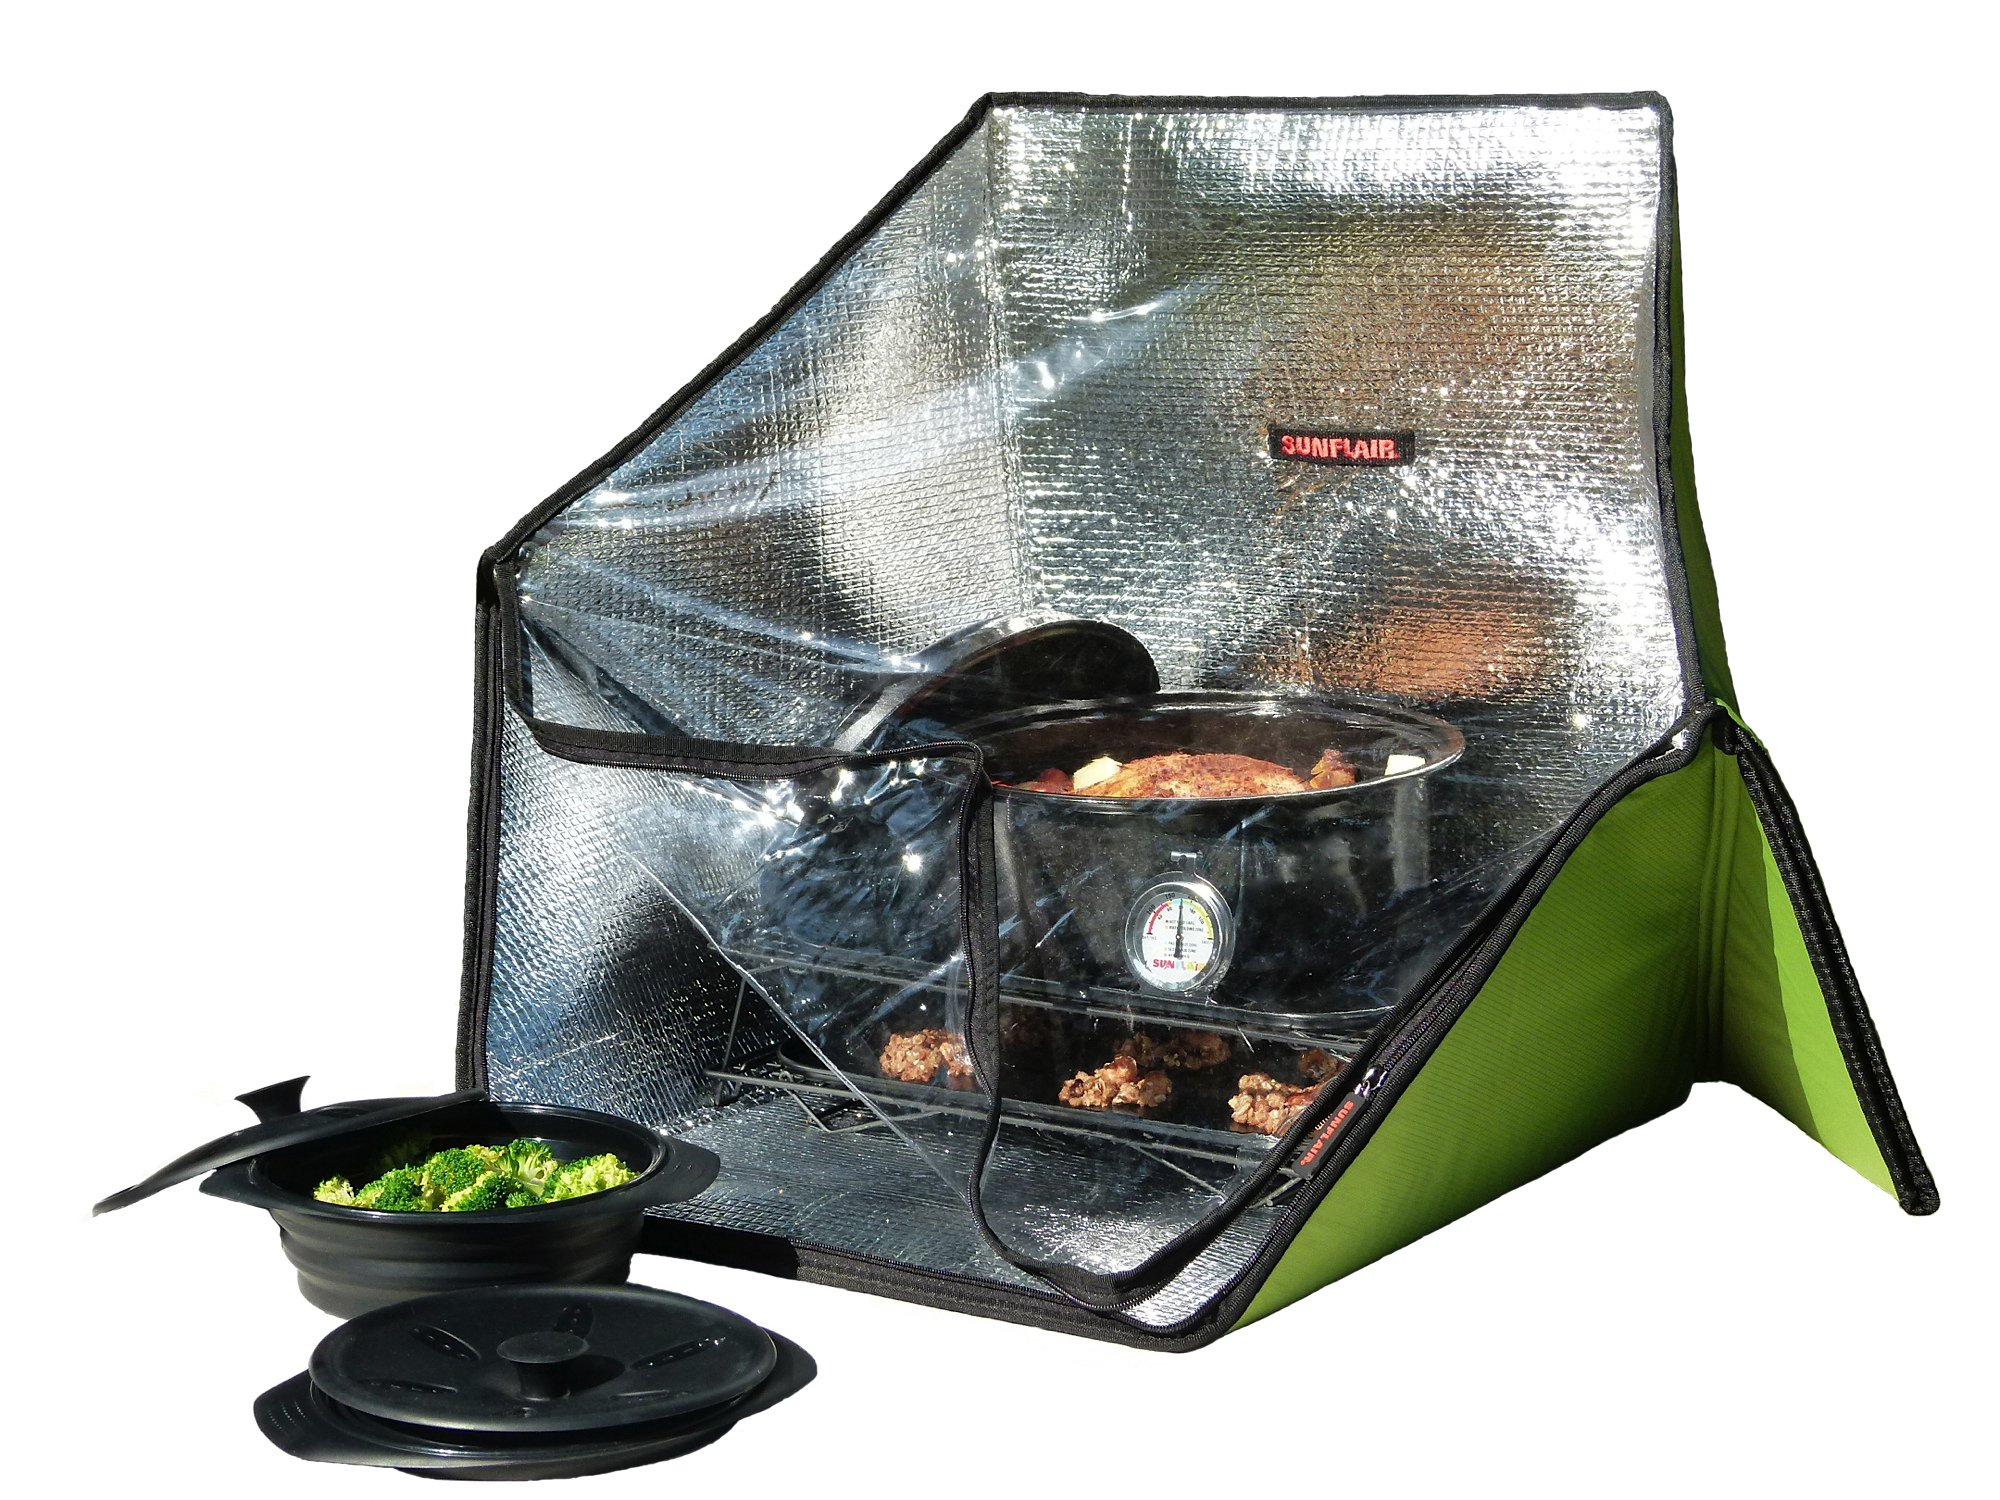 Sunflair Portable Solar Oven Deluxe with Complete Cookware, Dehydrating Racks, and Thermometer - Great for Camping, Outdoor Activities by Sunflair